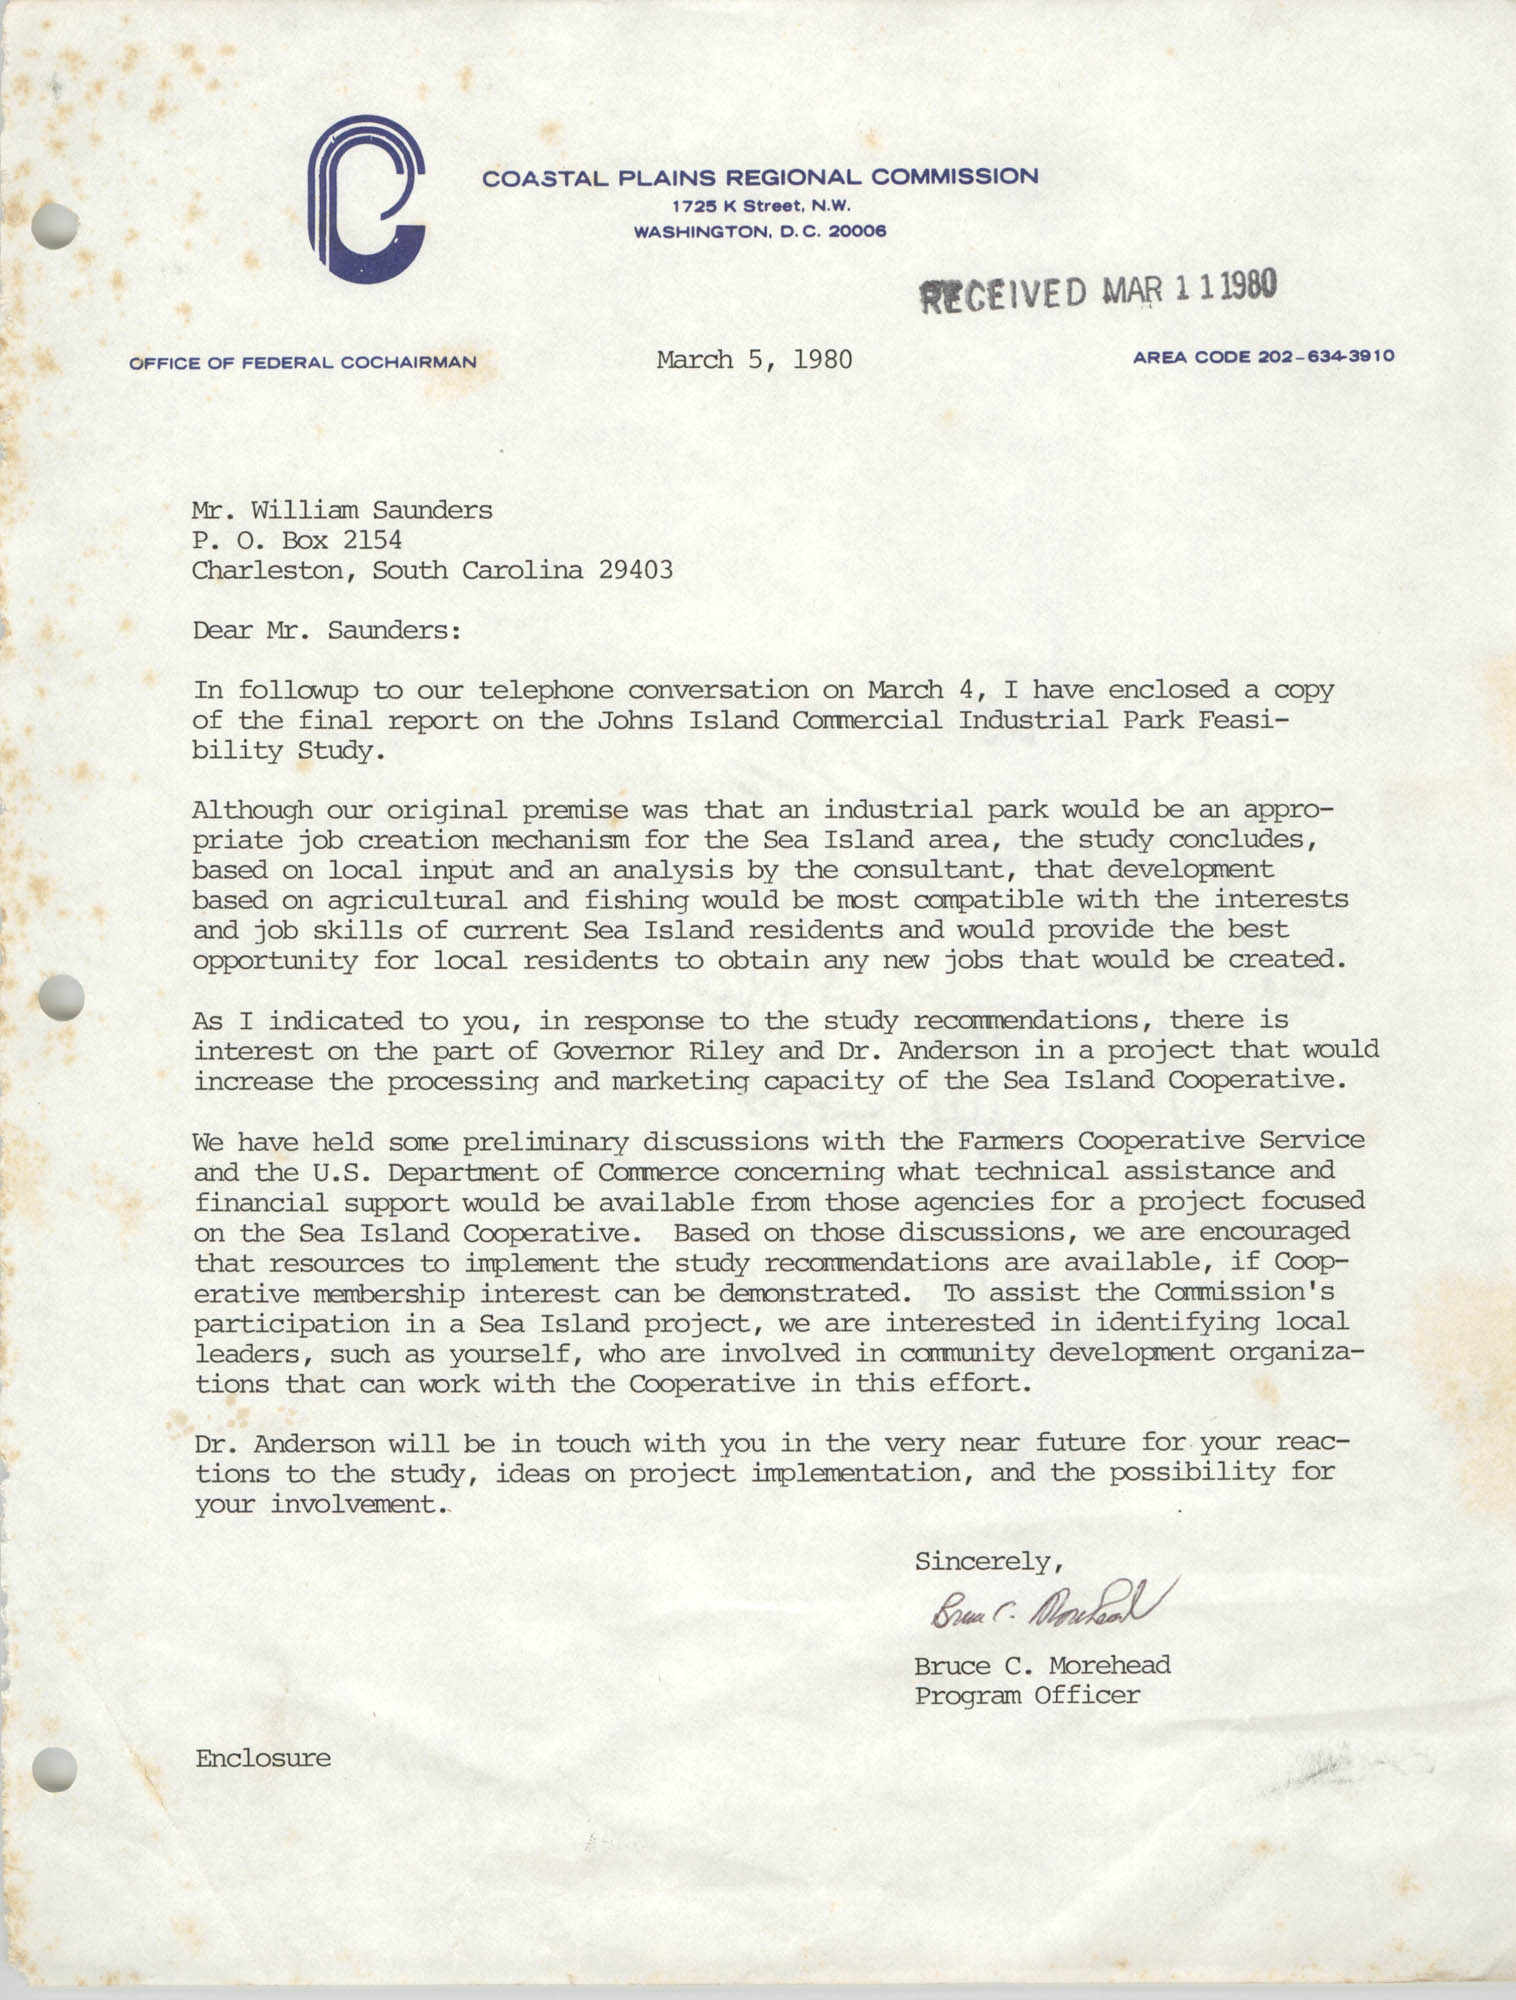 Letter from Bruce C. Morehead to William Saunders, March 5, 1980